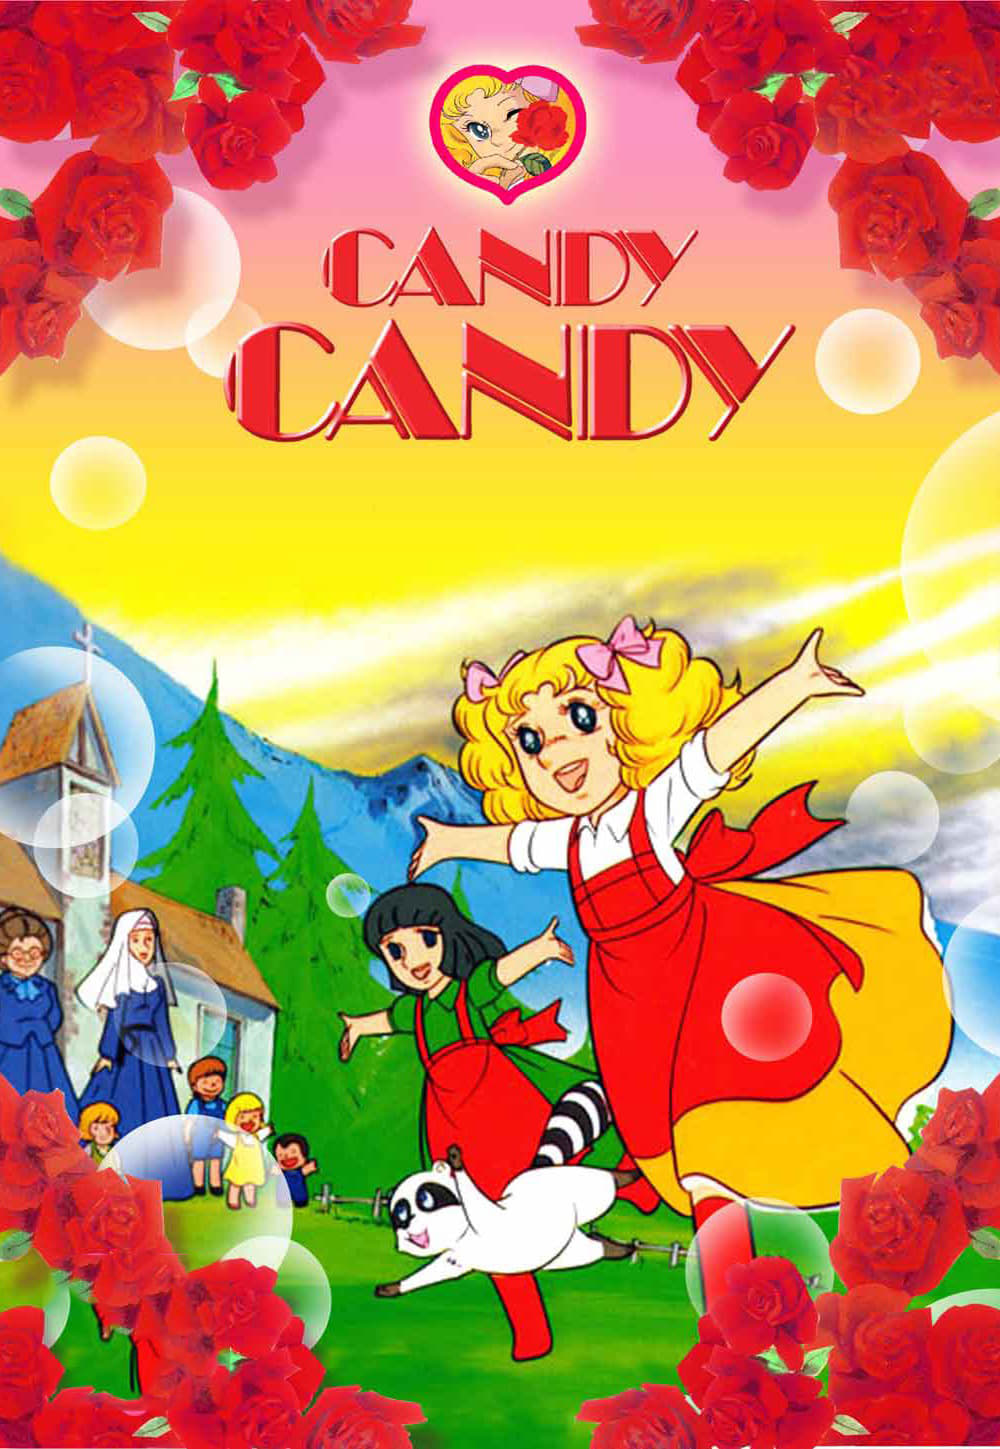 Candy Candy (1976)